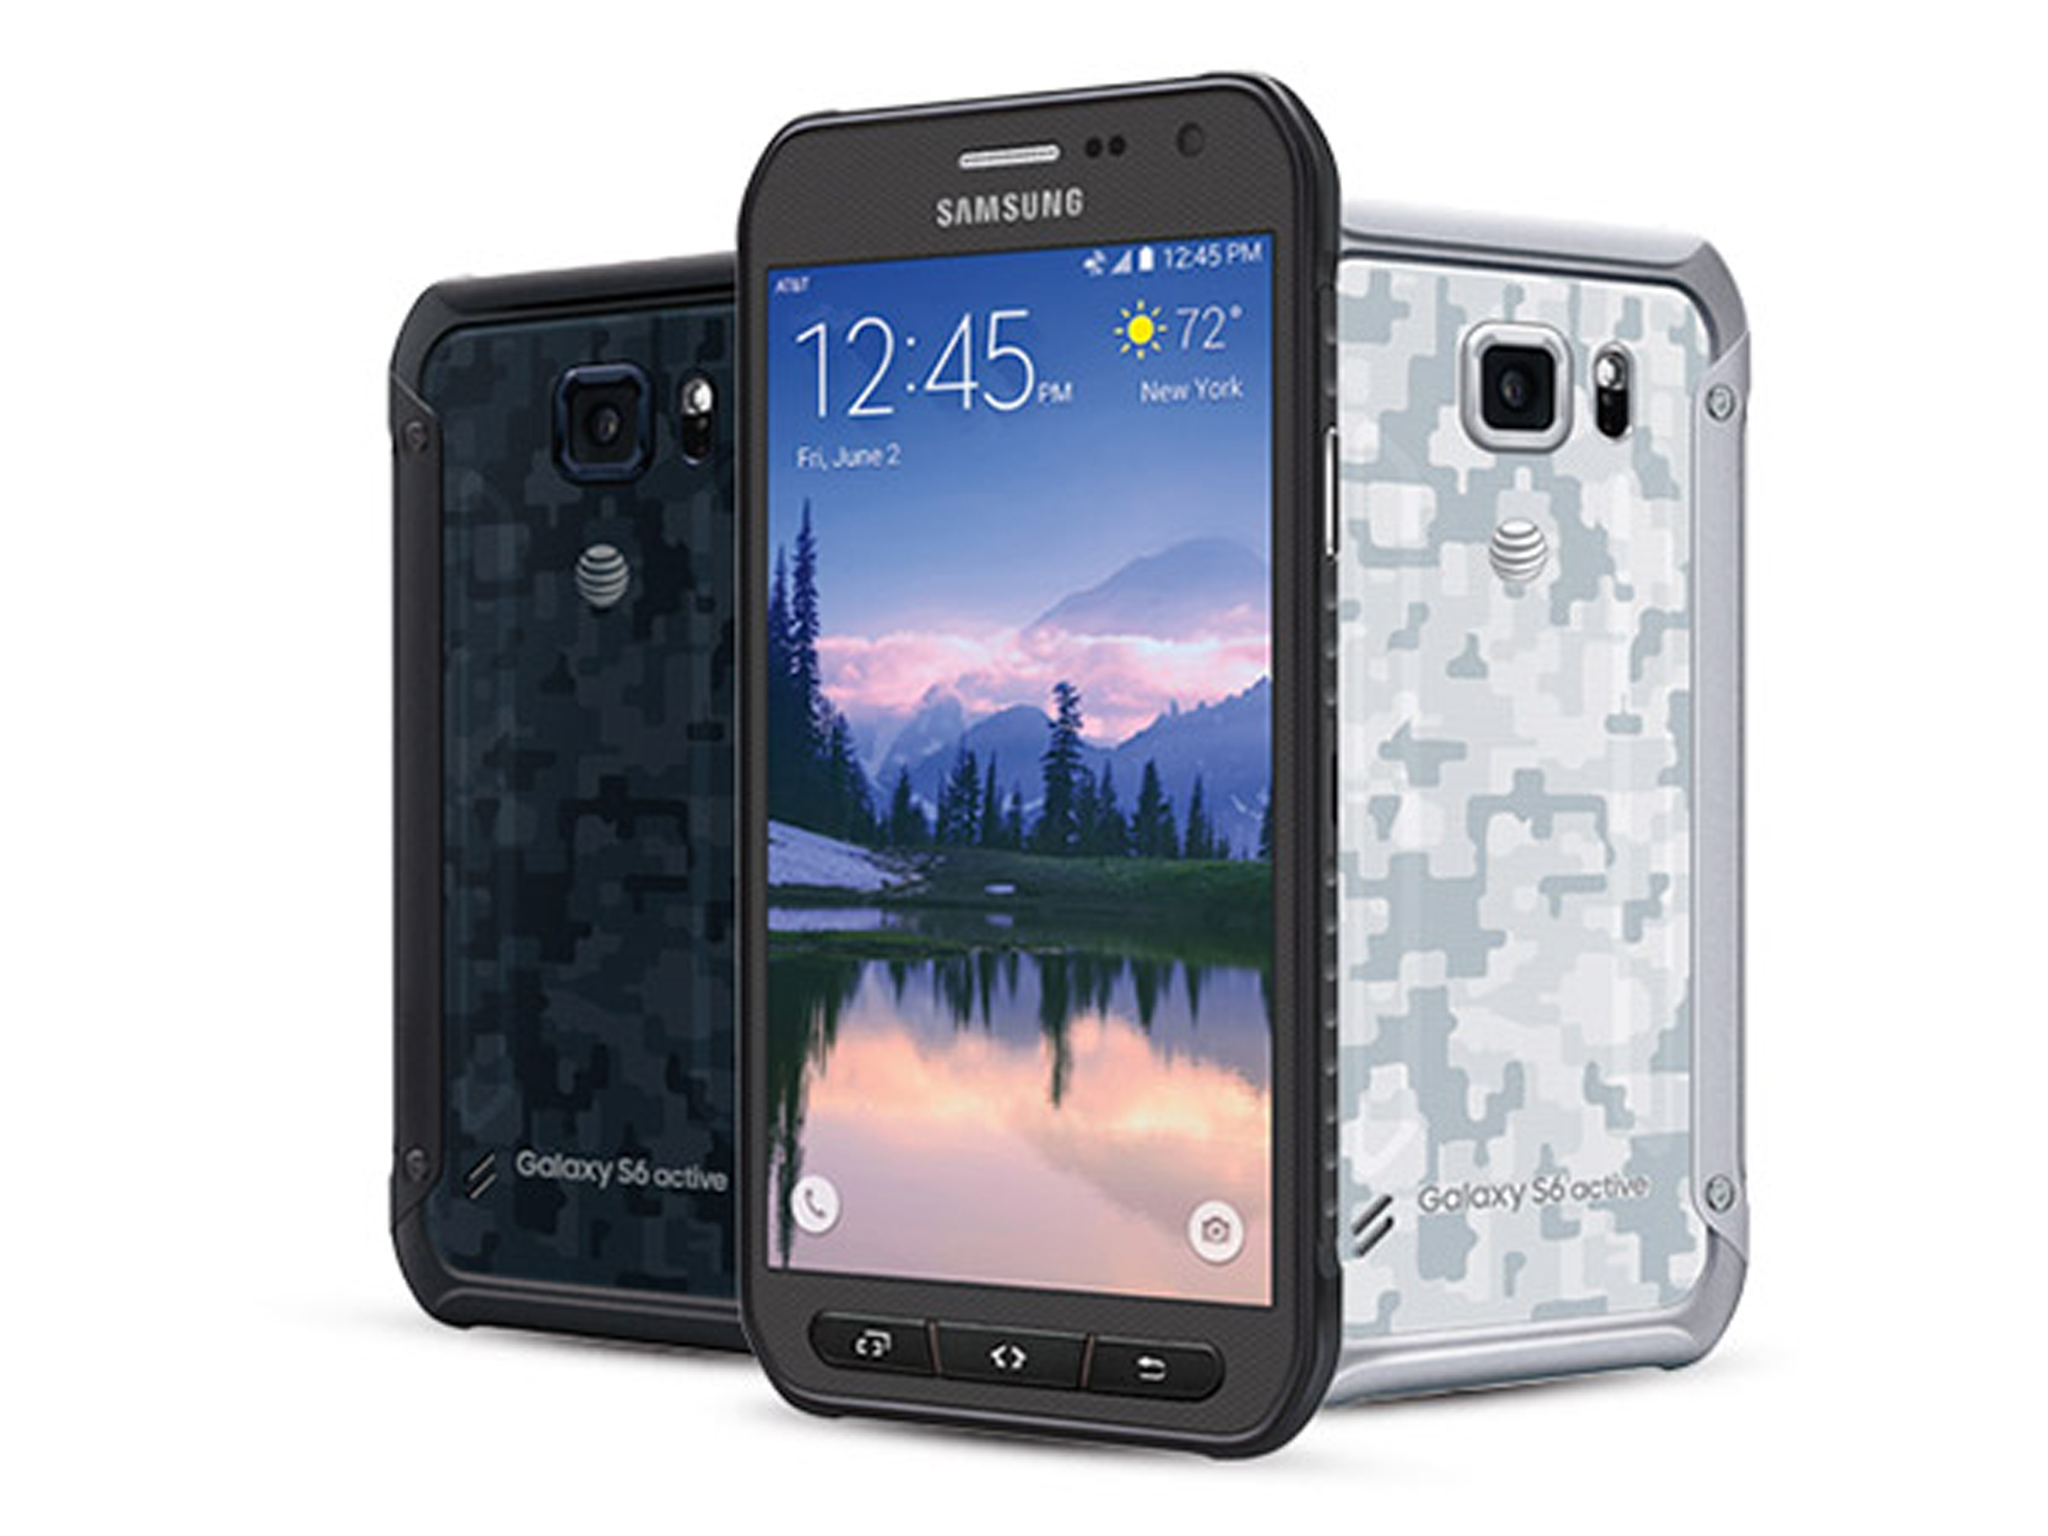 hot sale online 92b97 baa02 Samsung Galaxy S6 Active Review: Nearly Indestructible | Tom's Guide